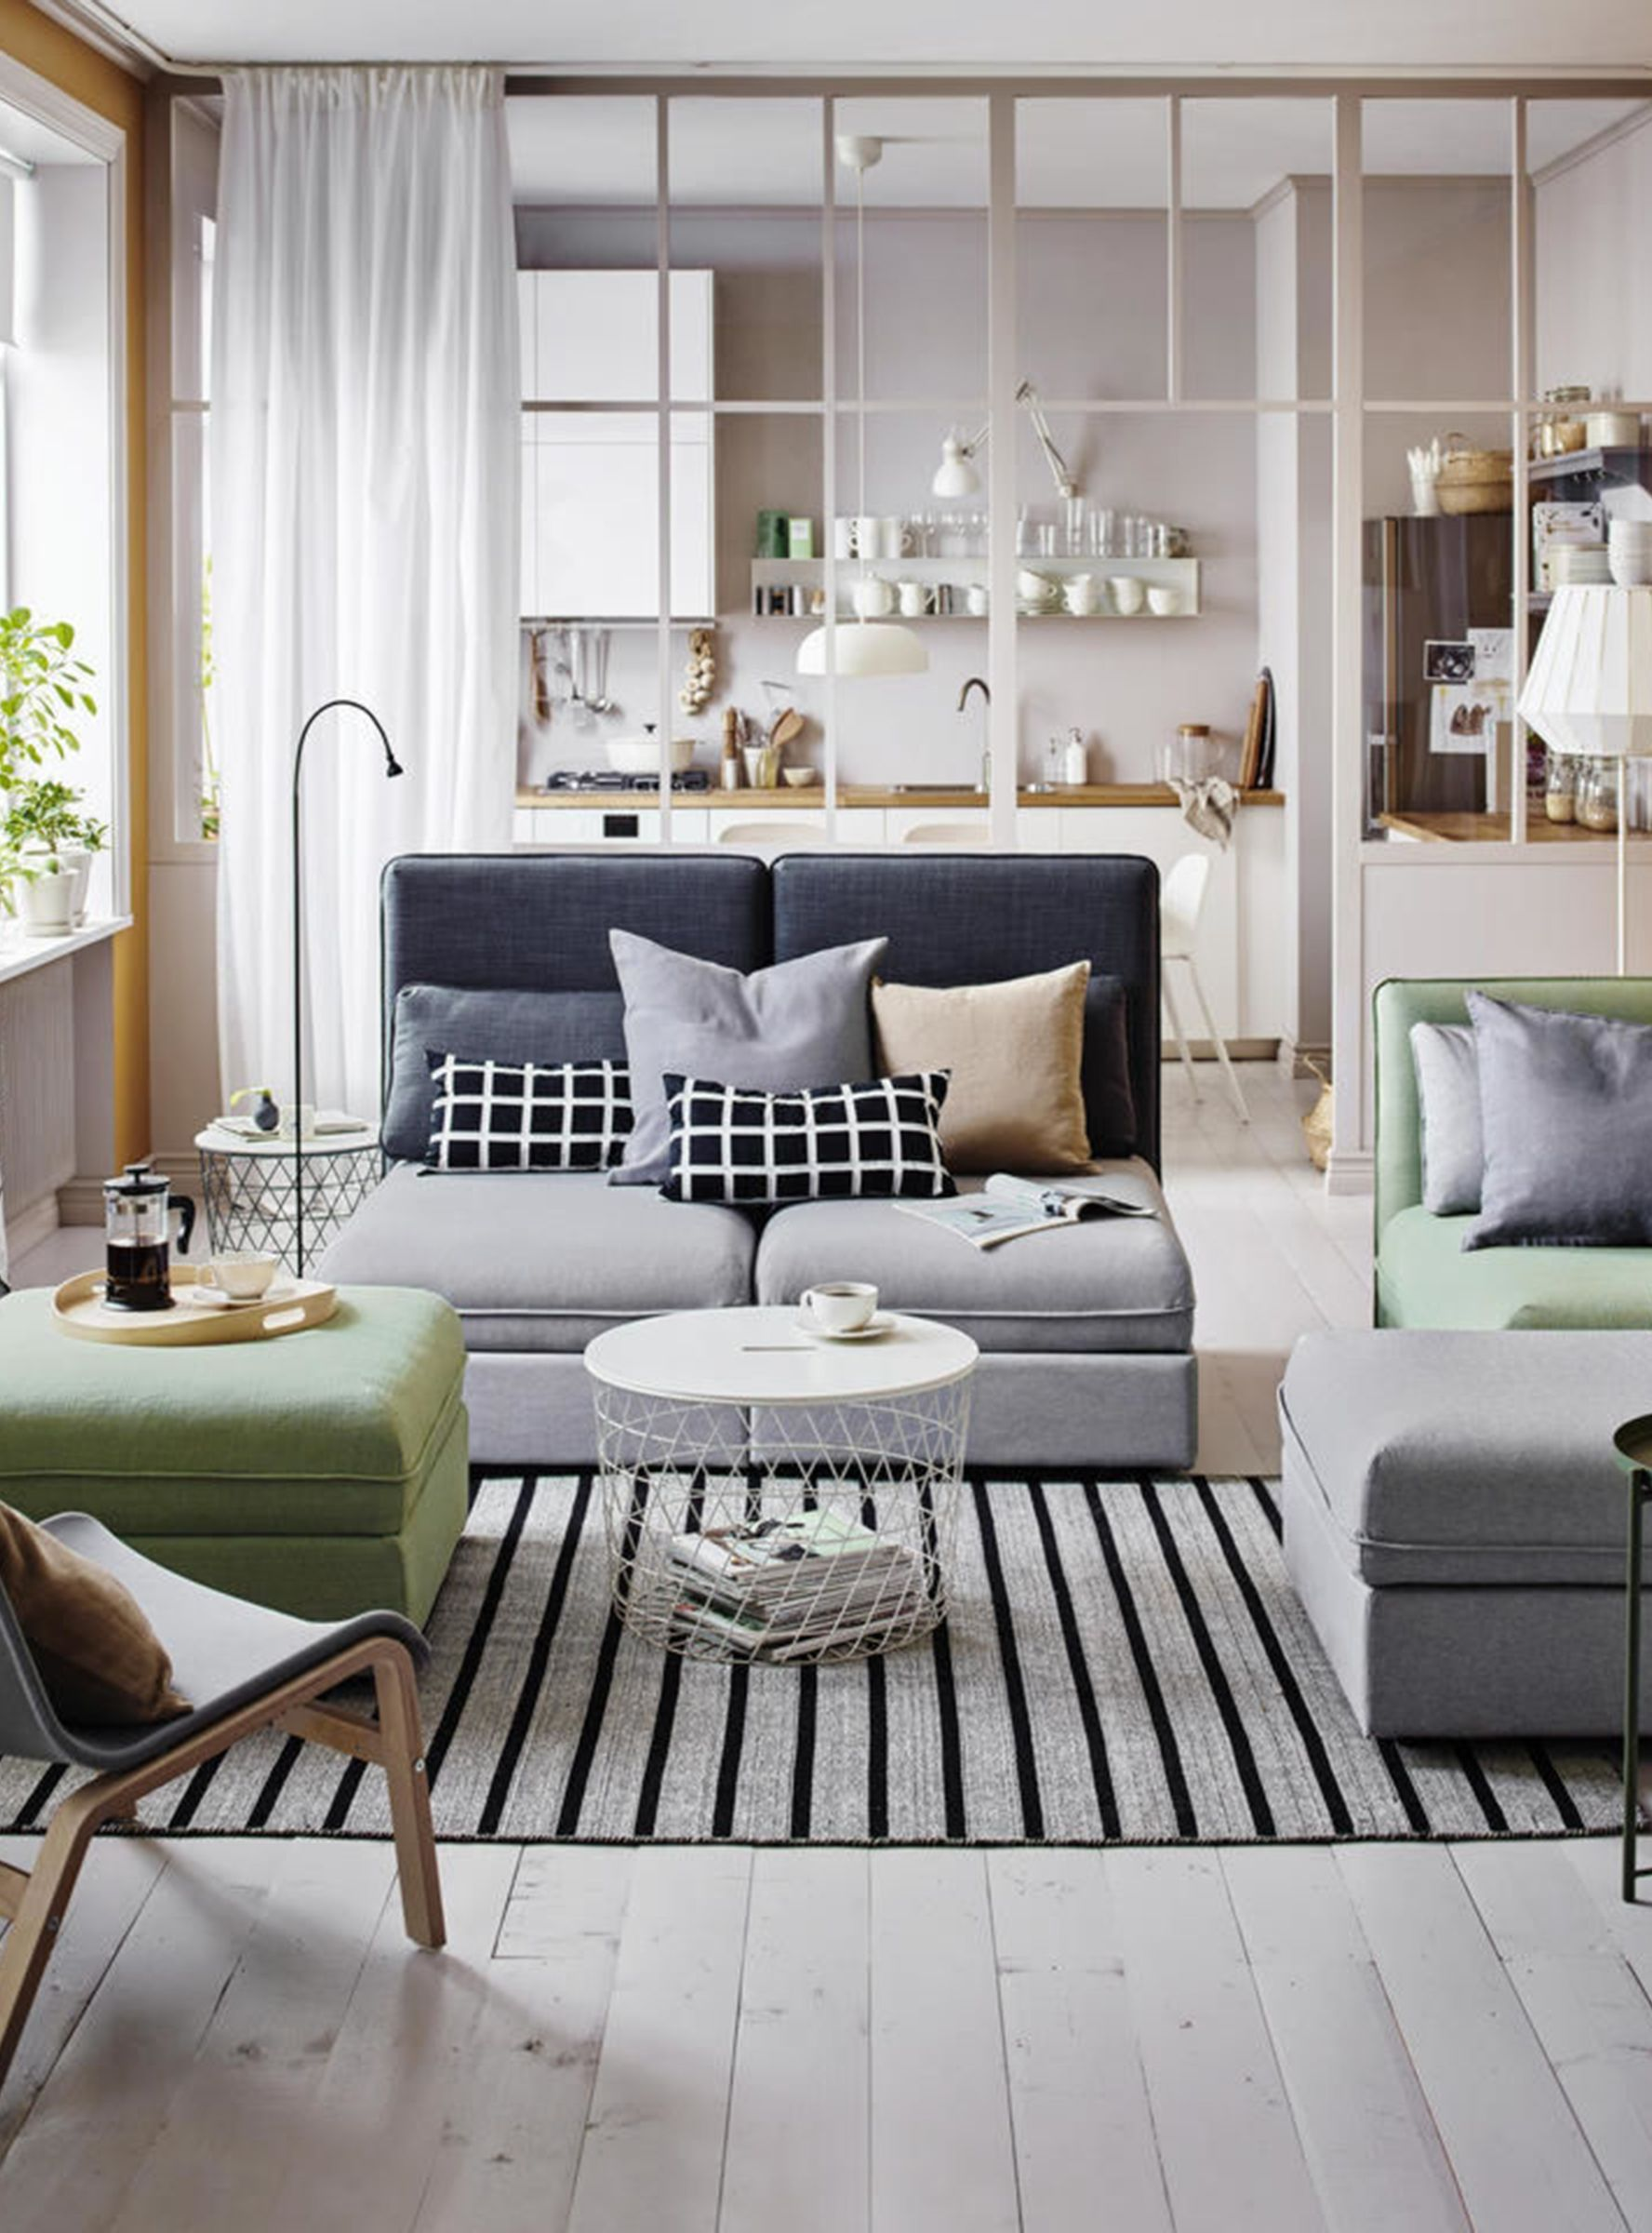 Design Your Room Online Ikea: All The Home Products You Need From Ikea's 2018 Catalog